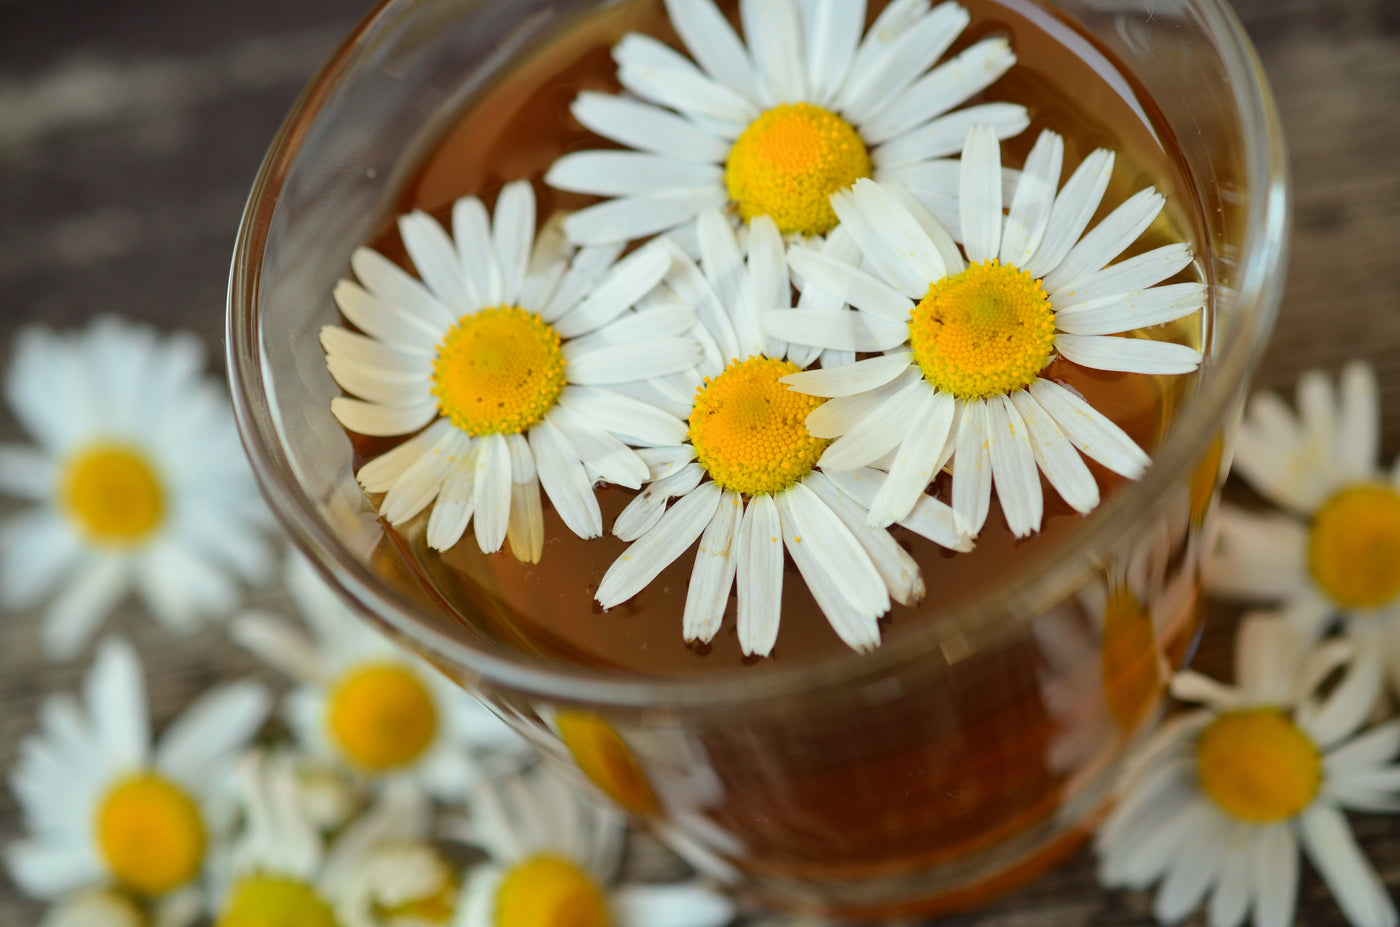 Chamomile – Bringing Rest to the Weary